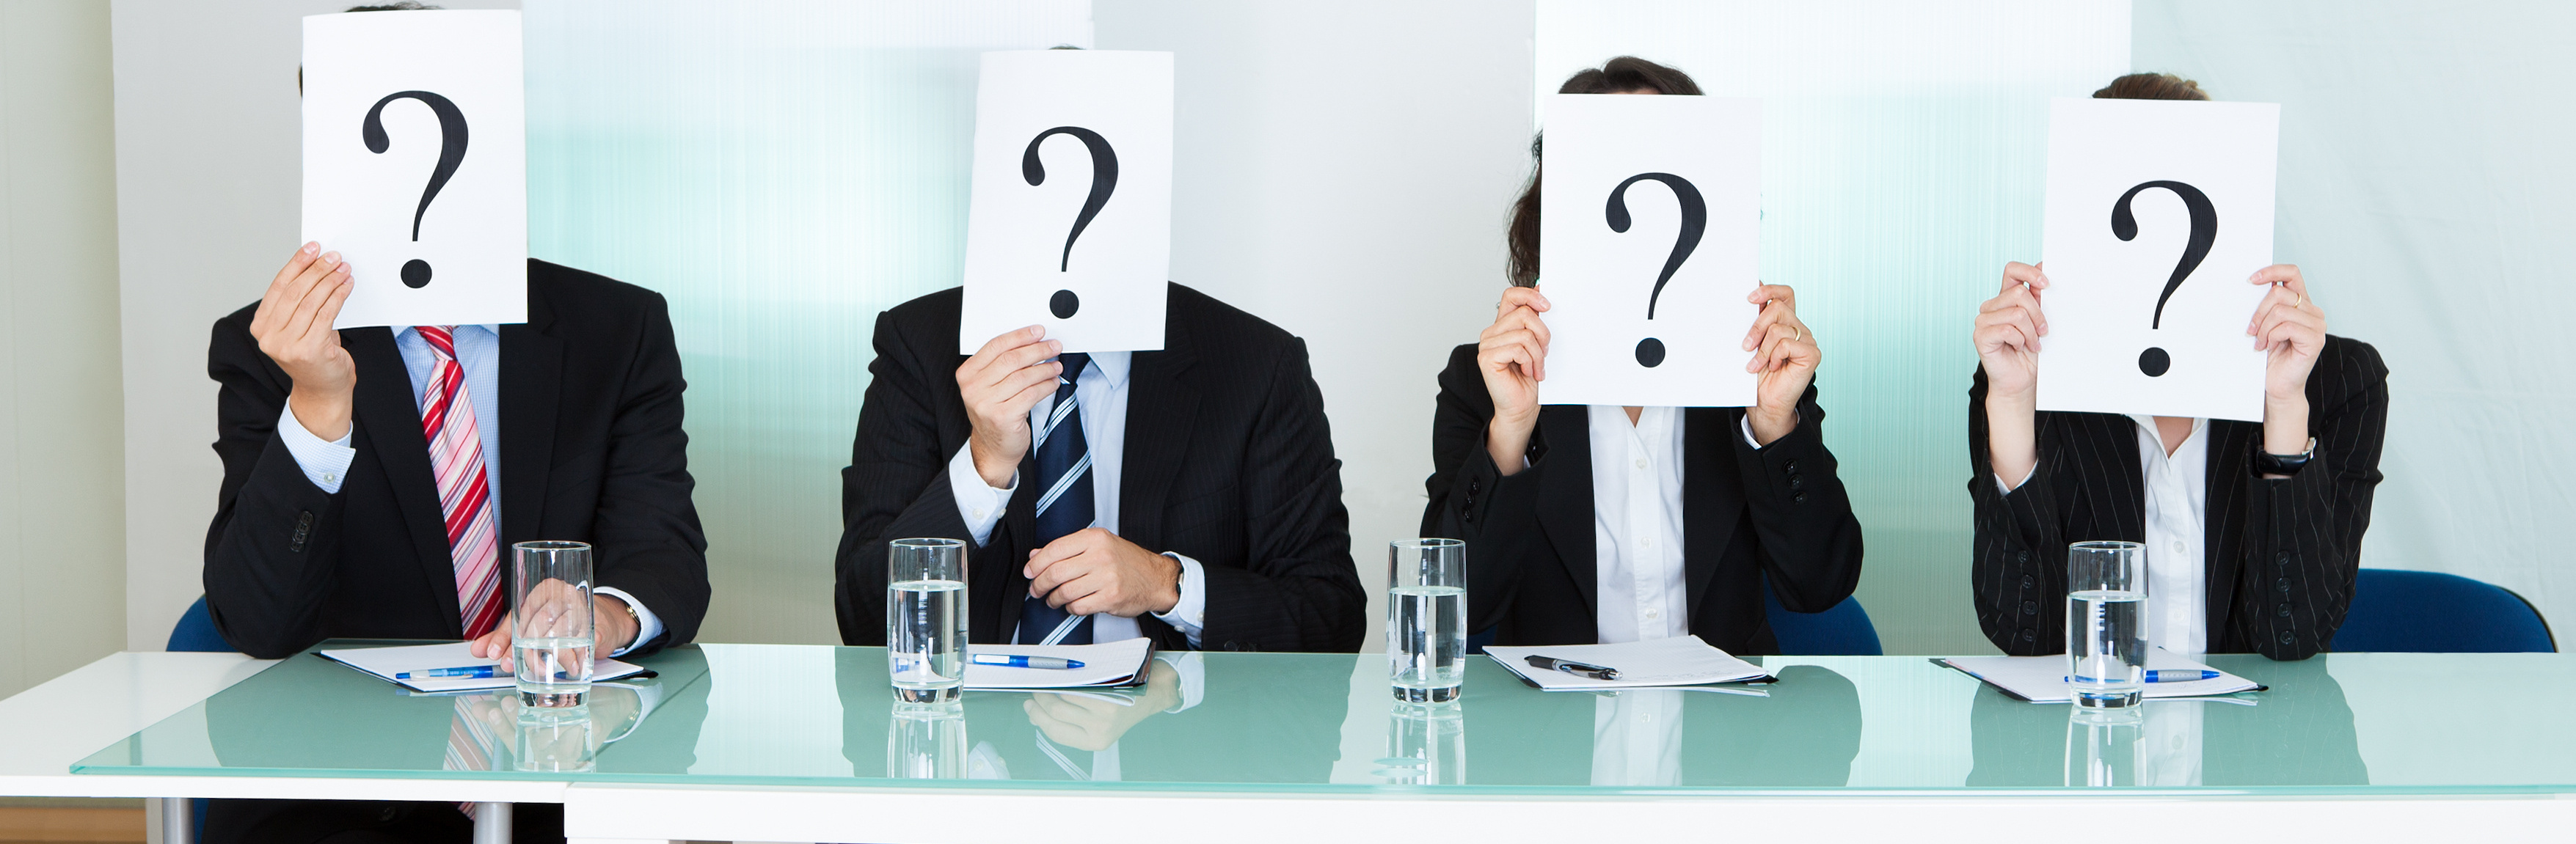 Row of businesspeople with question marks signs in front of their faces